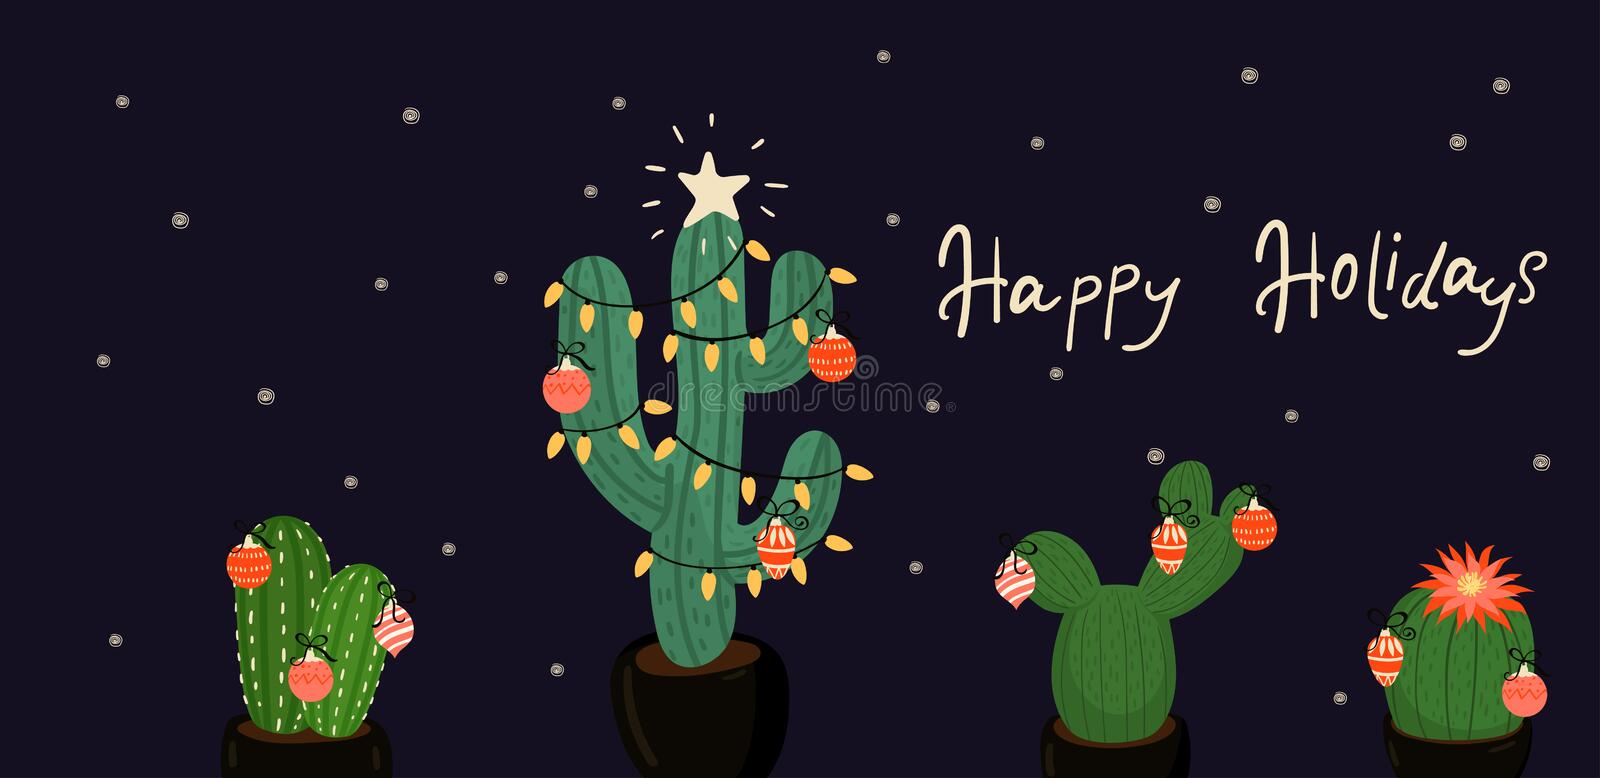 Banner with Christmas decorated cacti. vector image. Banner with Christmas decorated cacti. Vector graphics vector illustration